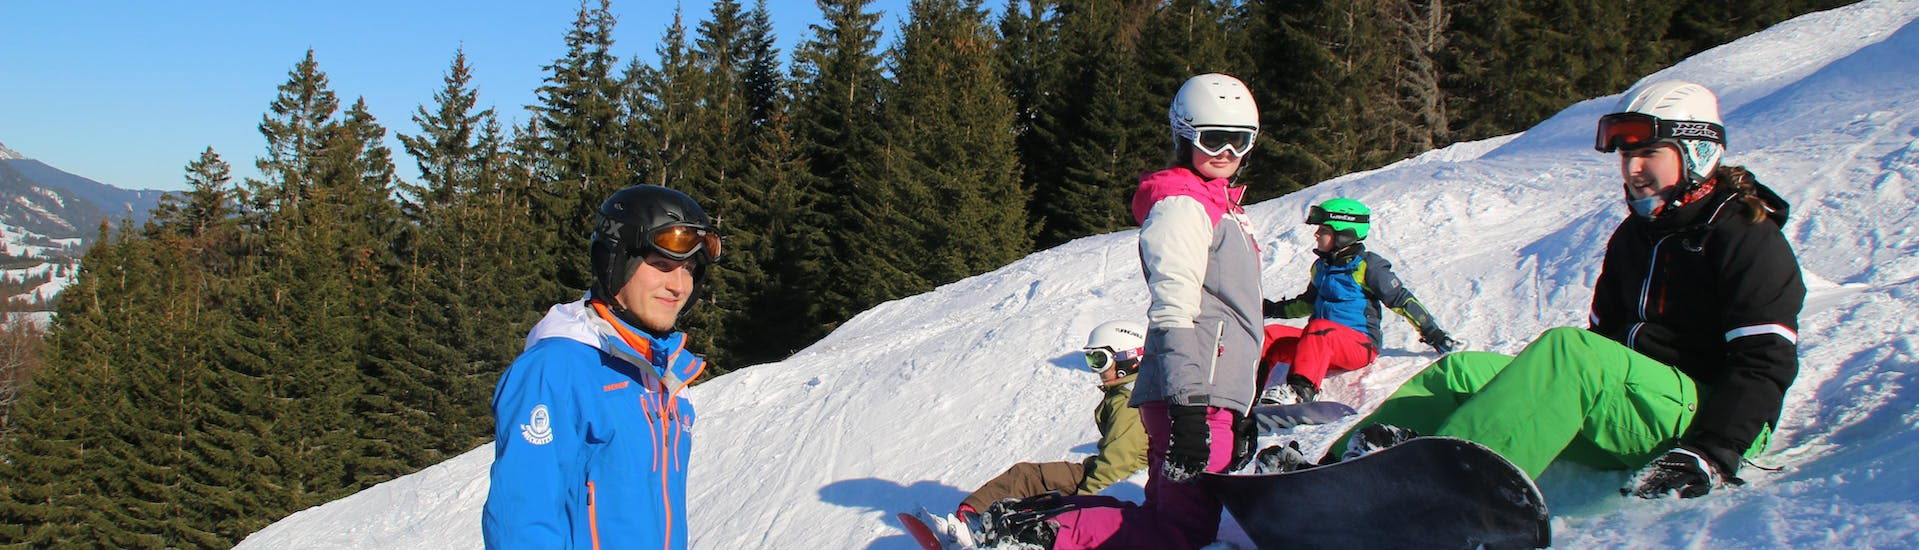 Kids Snowboarding Lessons (7-12 y.) - All in One with Ski & Snowboard School Ostrachtal - Hero image